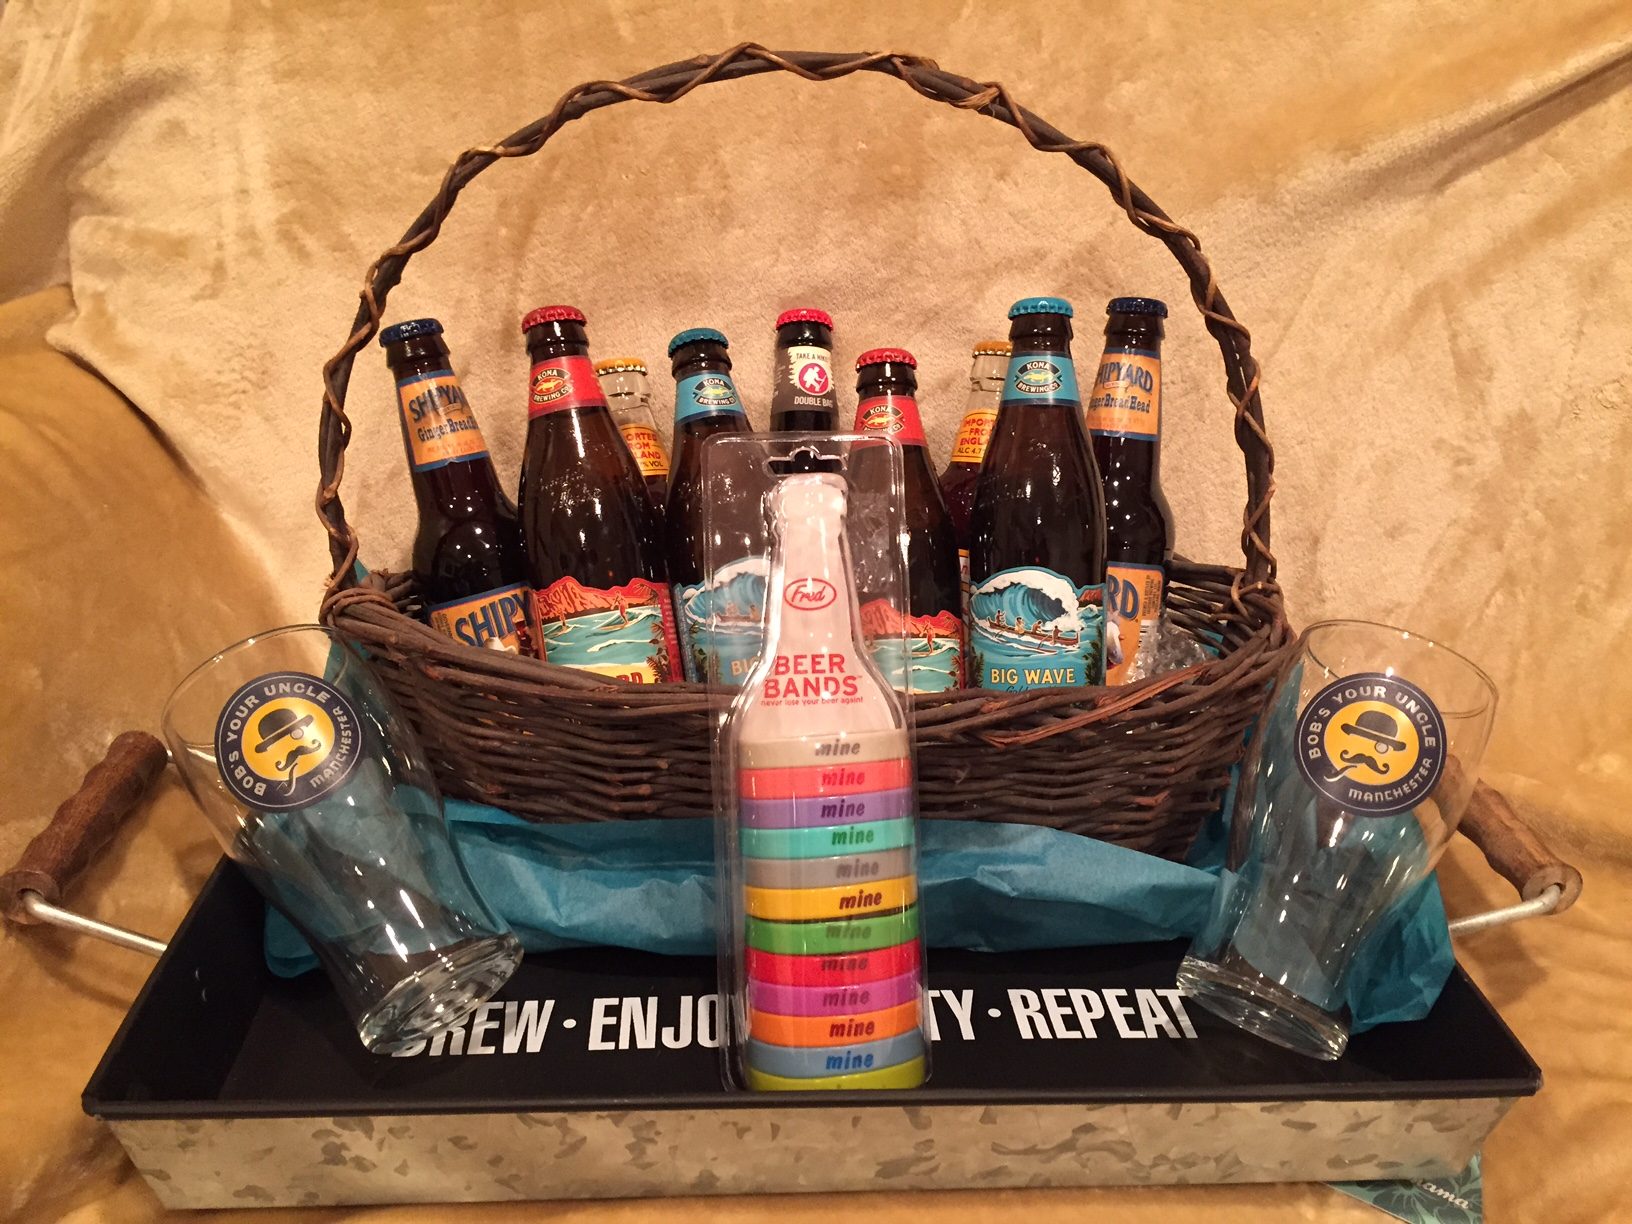 Beer lover's basket....mmmm....beer